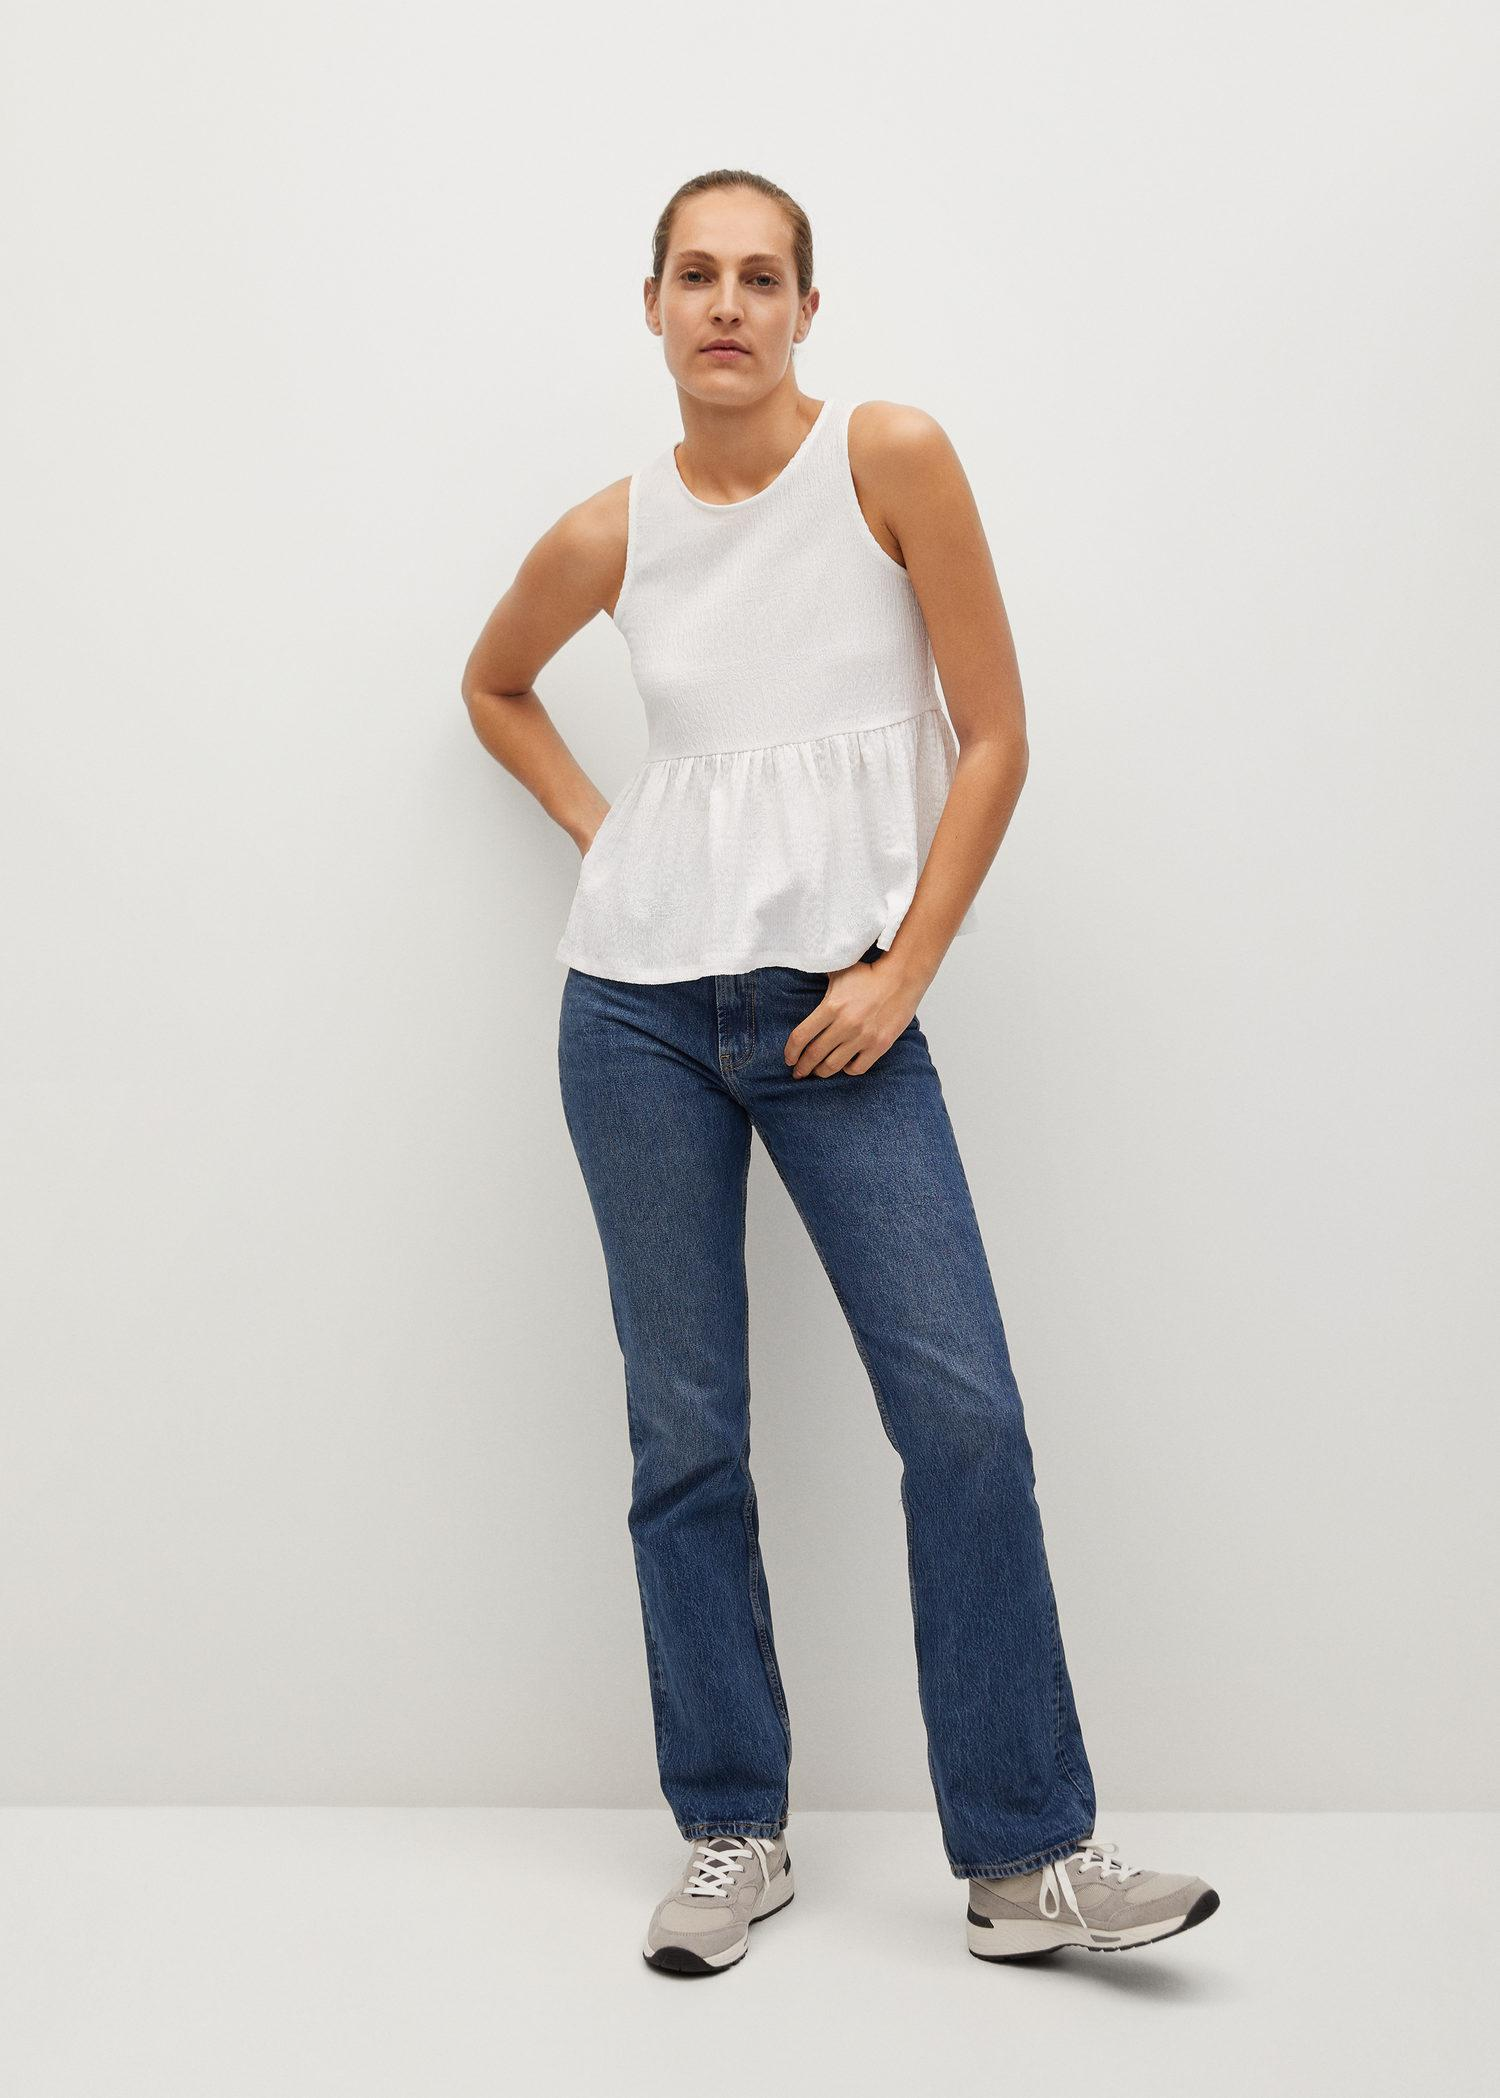 Top with ruffle texture 1